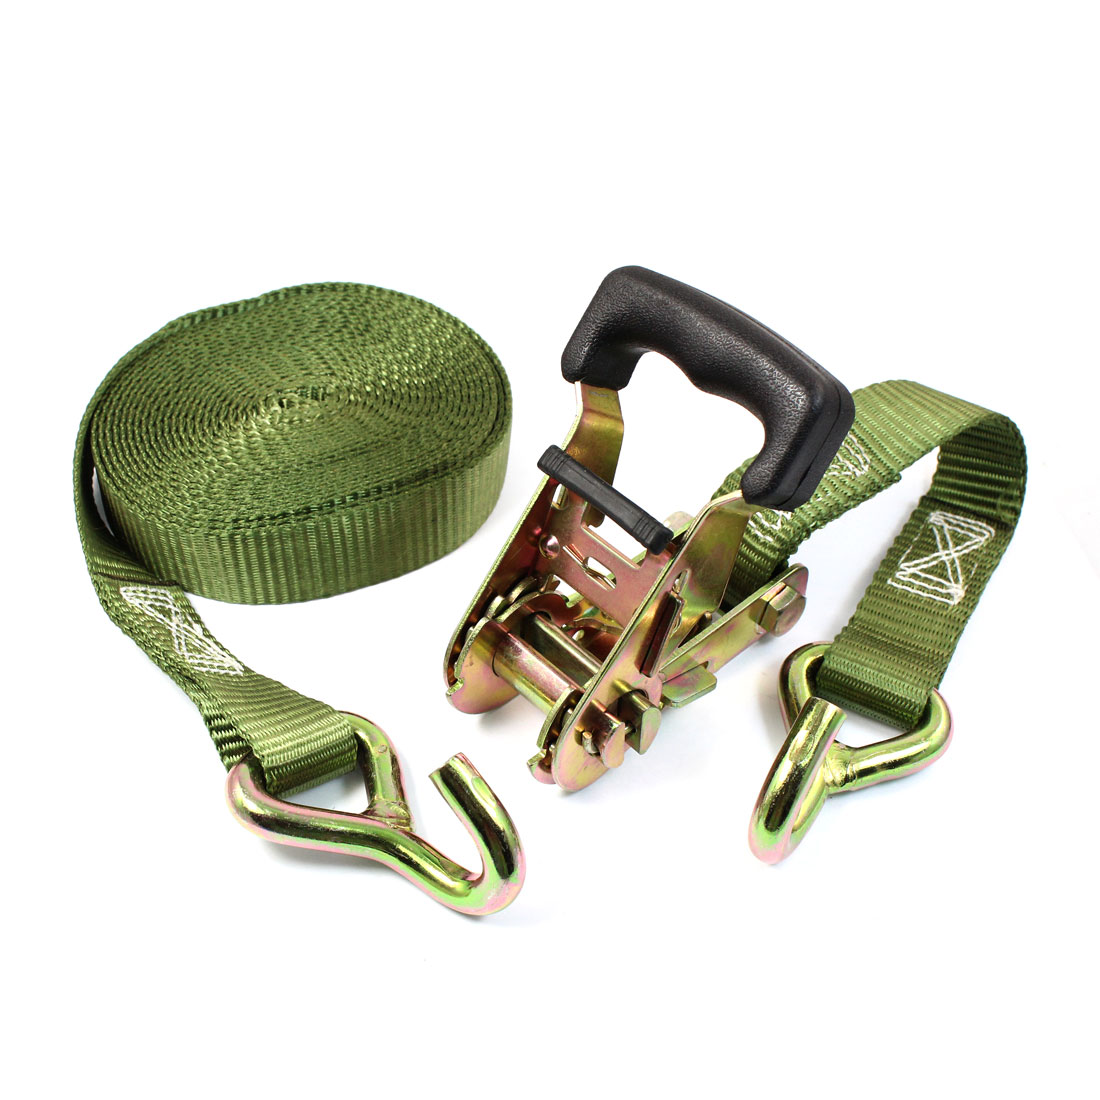 Truck Cargo Binding Metal Hook Ratchet Tie Down Strap 5M 16ft Green